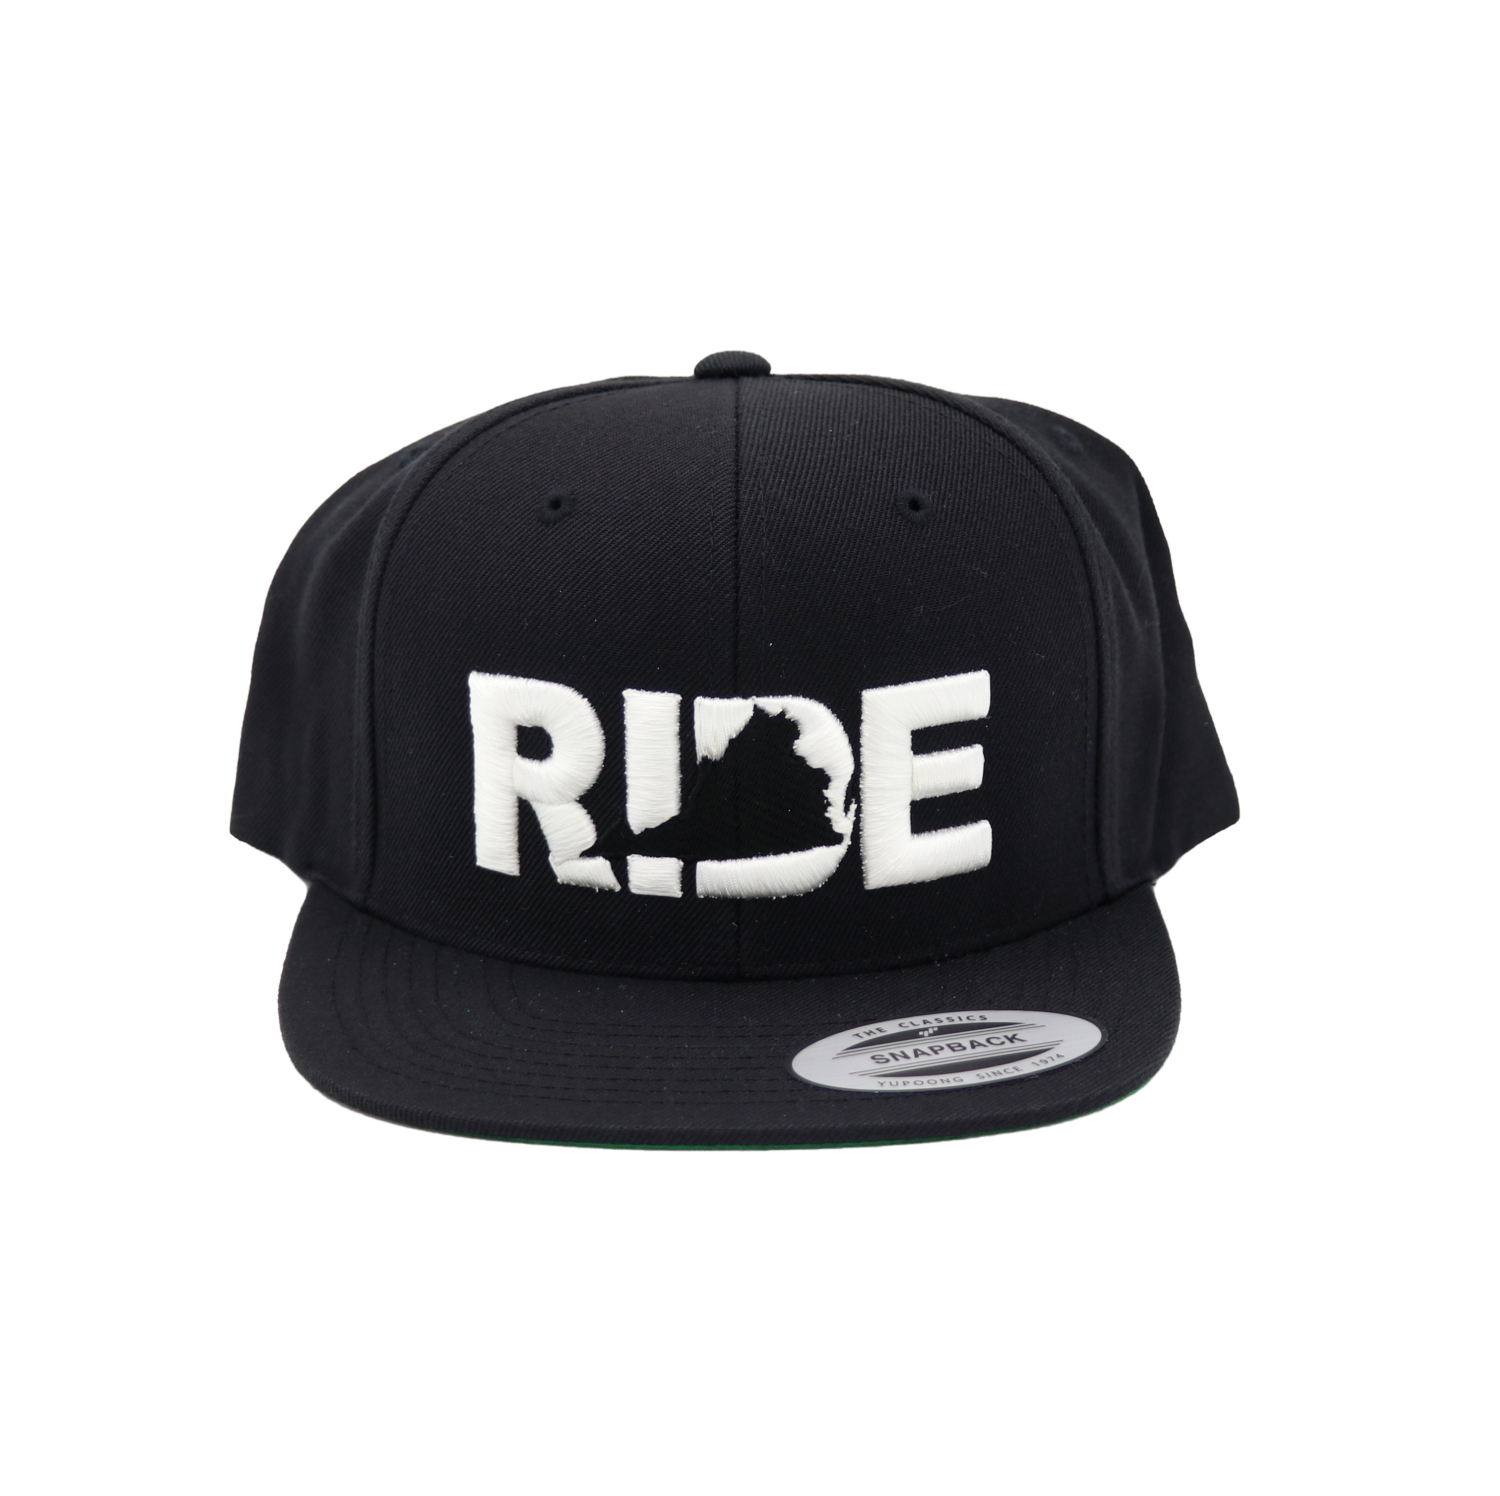 Ride Virginia Classic Embroidered  Snapback Flat Brim Hat Black/White